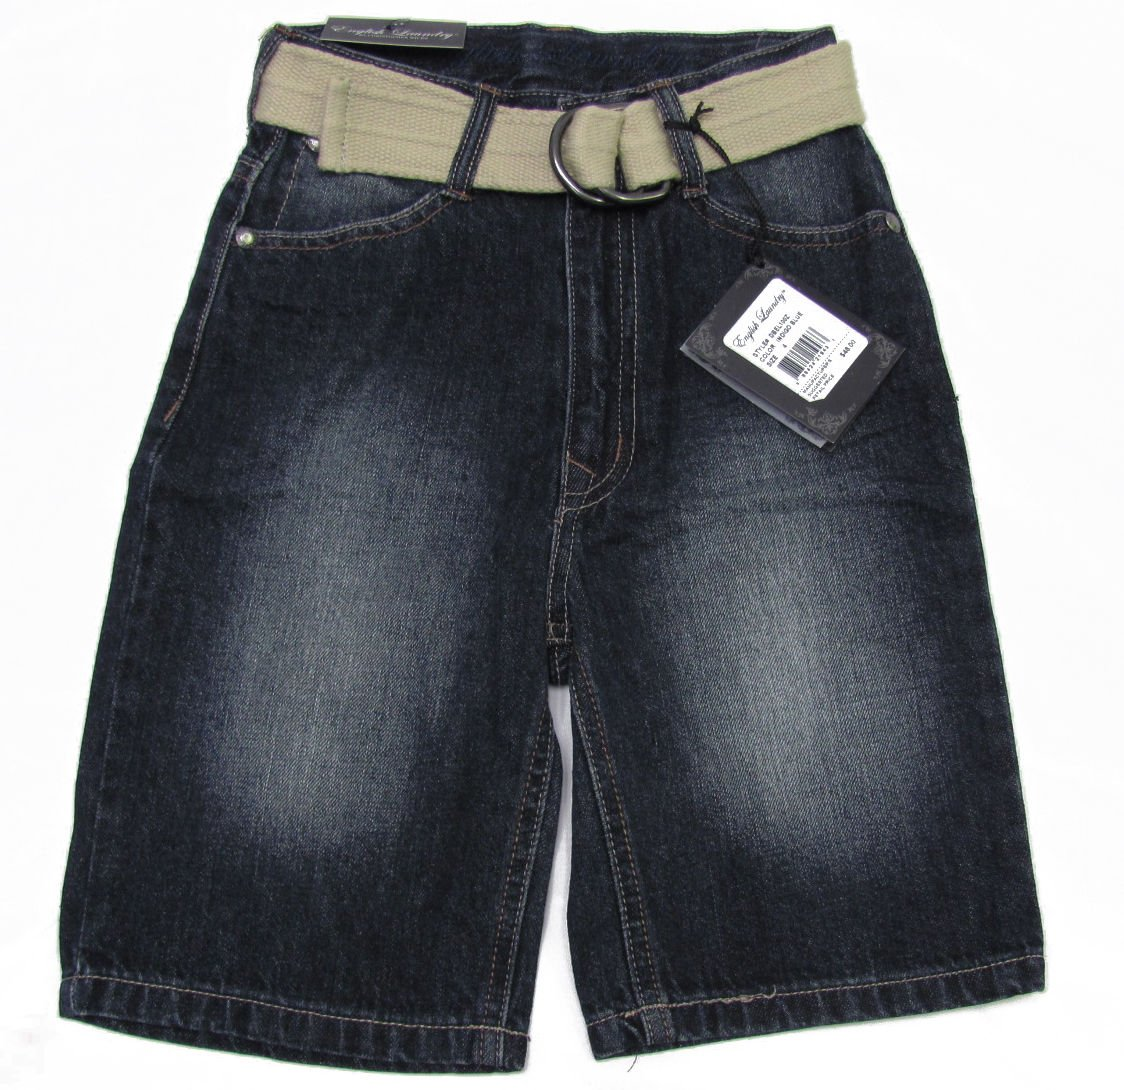 English Laundry Boys size 12 Dark Blue Jean Shorts with Belt New